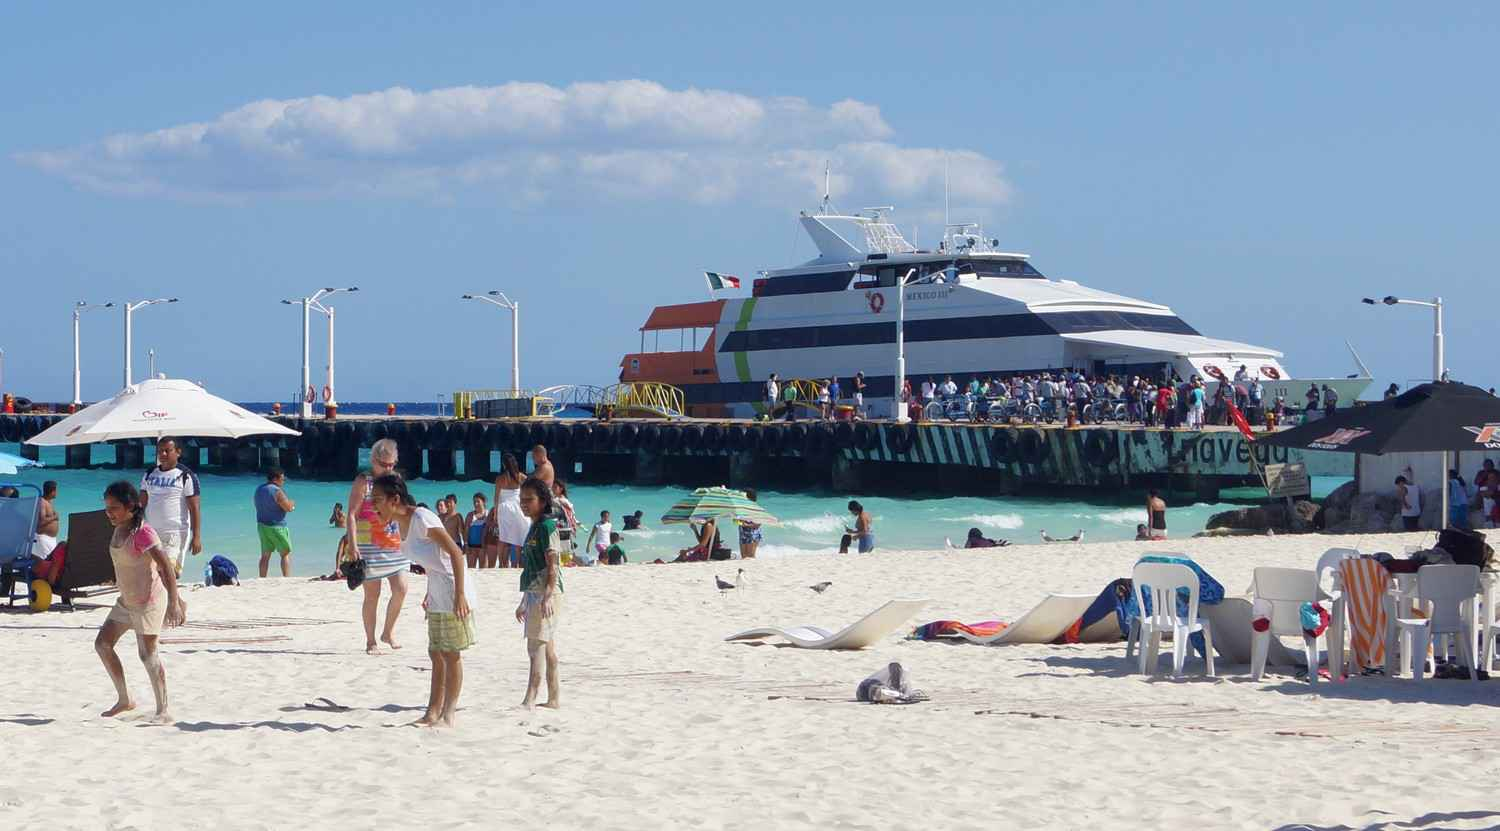 A ferry boat docked near the Playa Del Carmen beach.